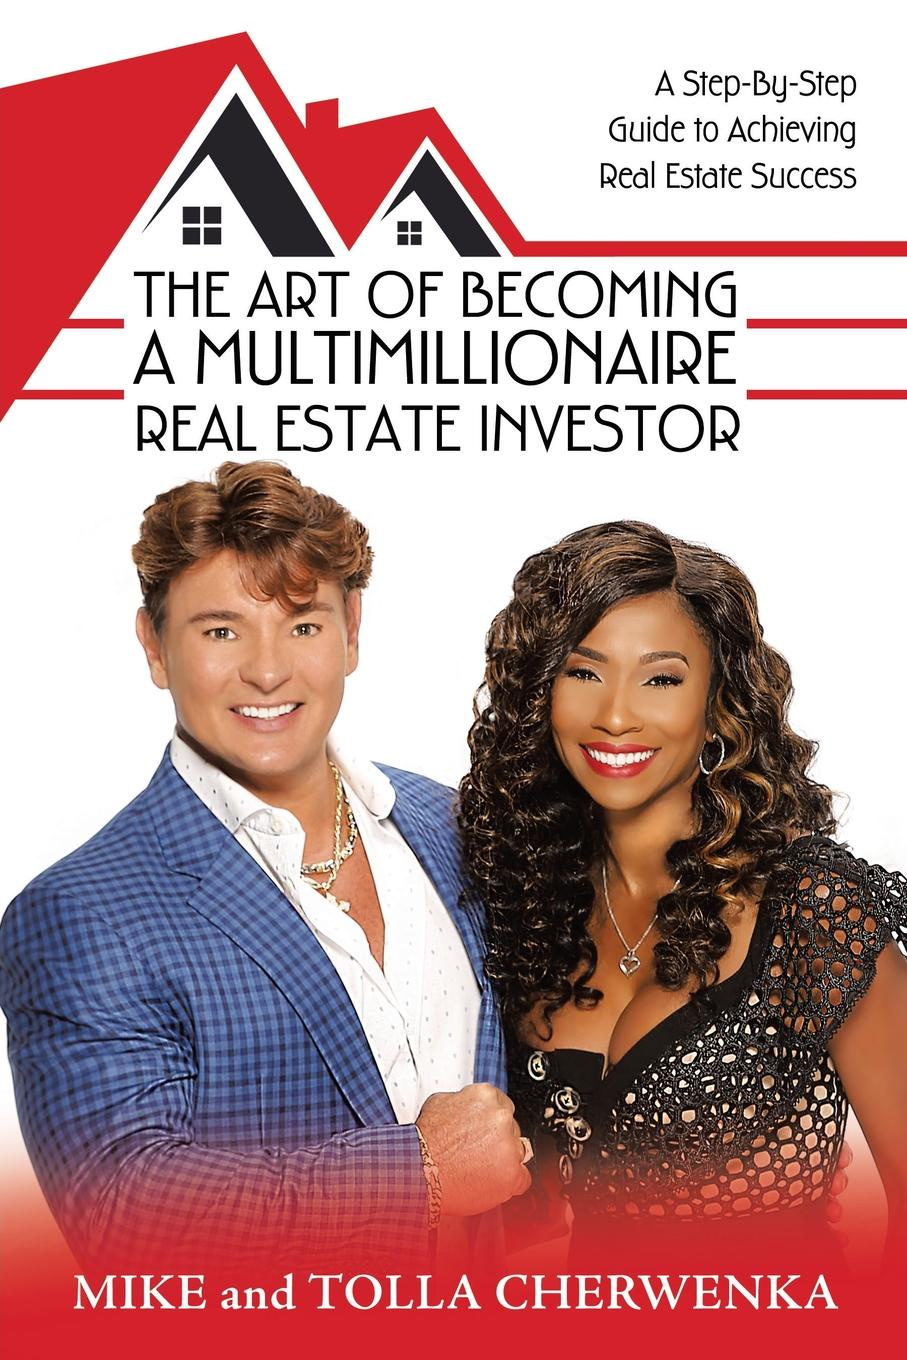 Mike Cherwenka, Tolla Cherwenka The Art of Becoming a Multimillionaire Real Estate Investor. A Step-By-Step Guide to Achieving Real Estate Success the real estate investor s guide to cash flow and equity management